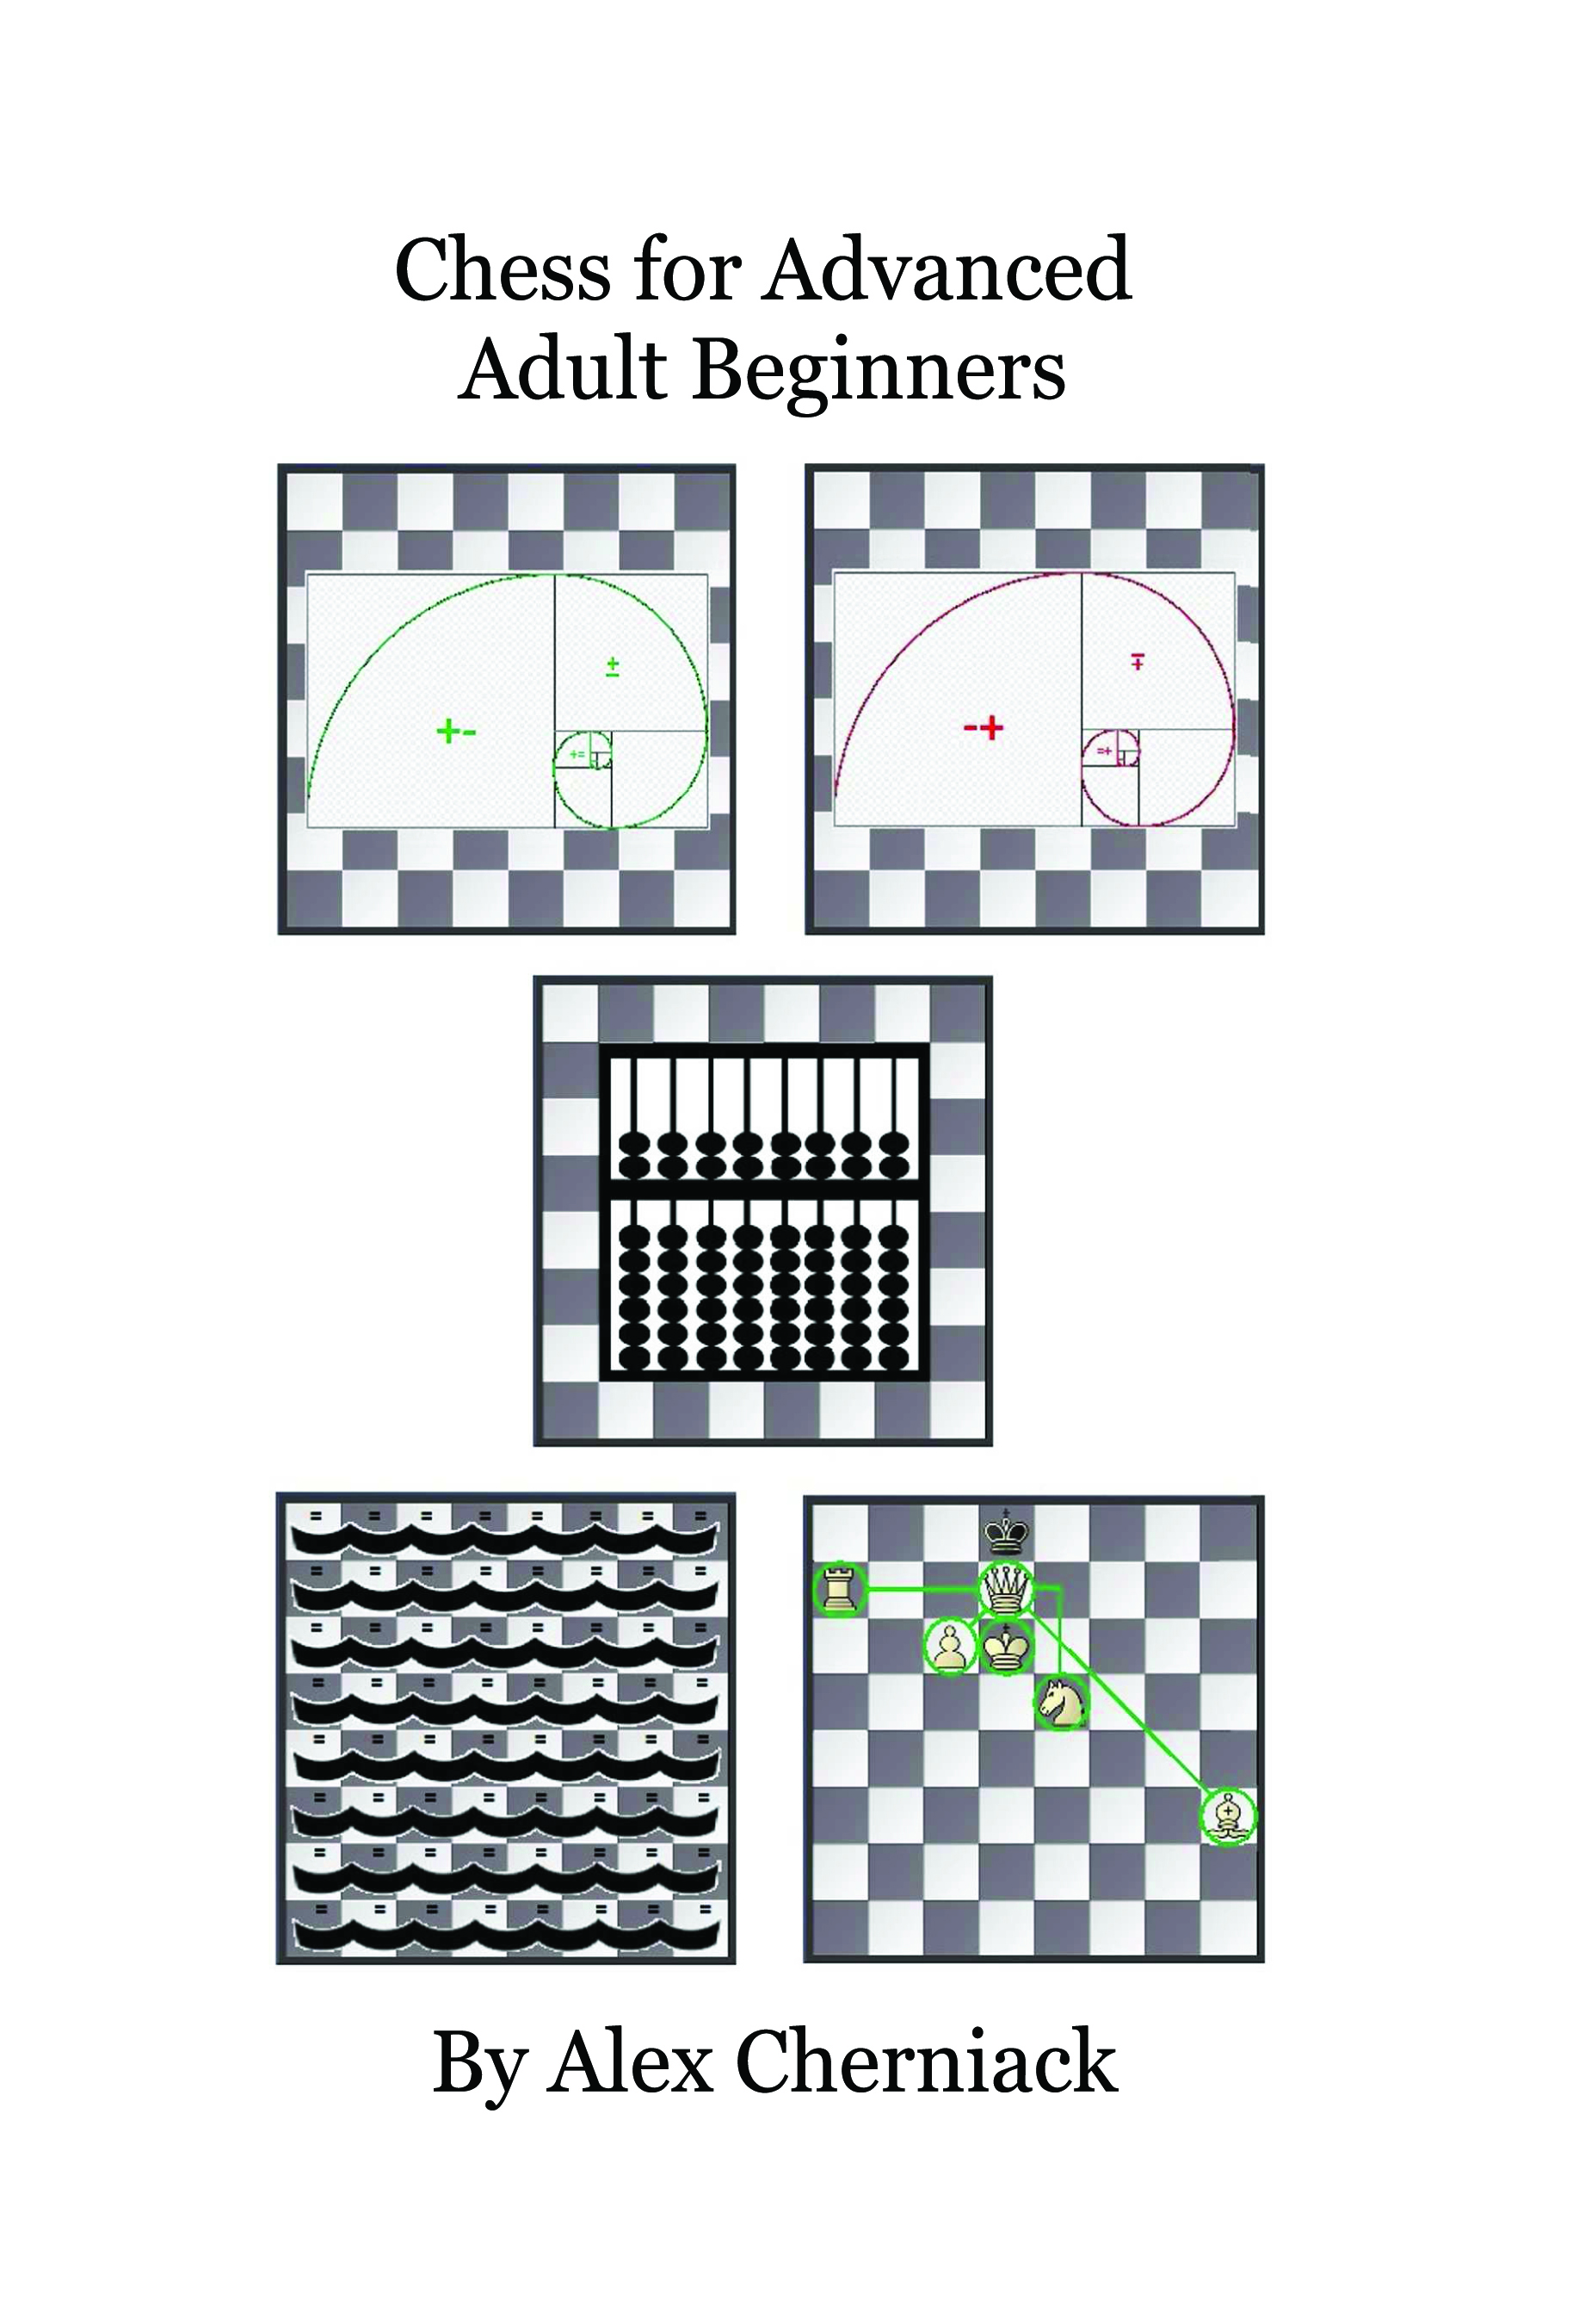 Chess for Advanced Adult Beginners